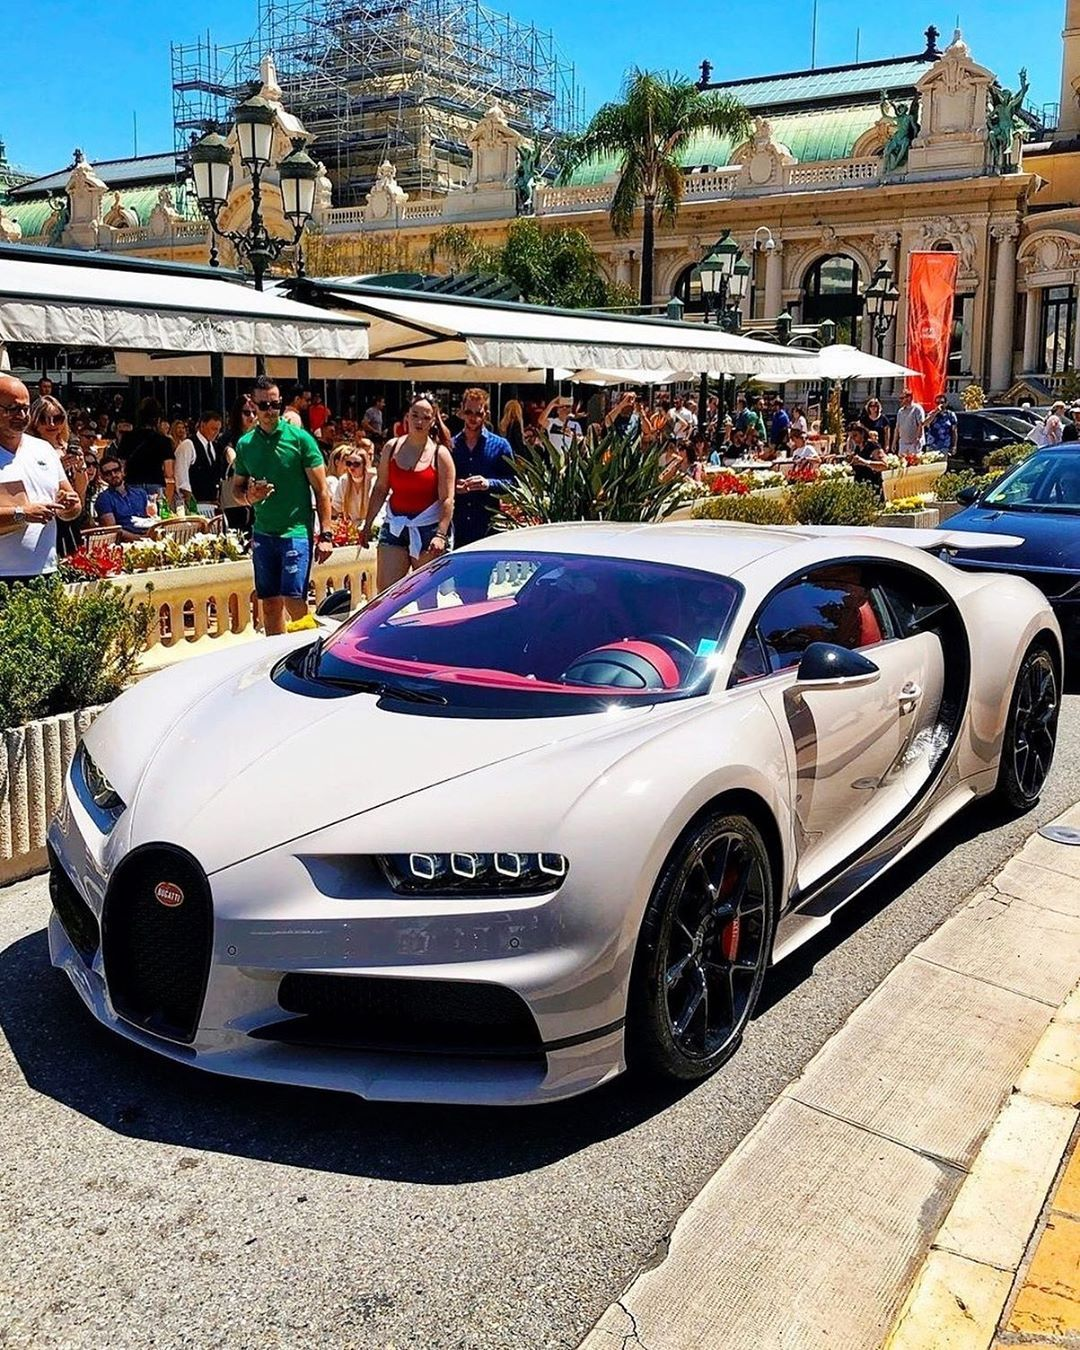 Chiron Sport Live From Monaco Cars247 Florian Photographyy Bugatti Chiron Sport Cars British Sports Cars Car Photos Hd